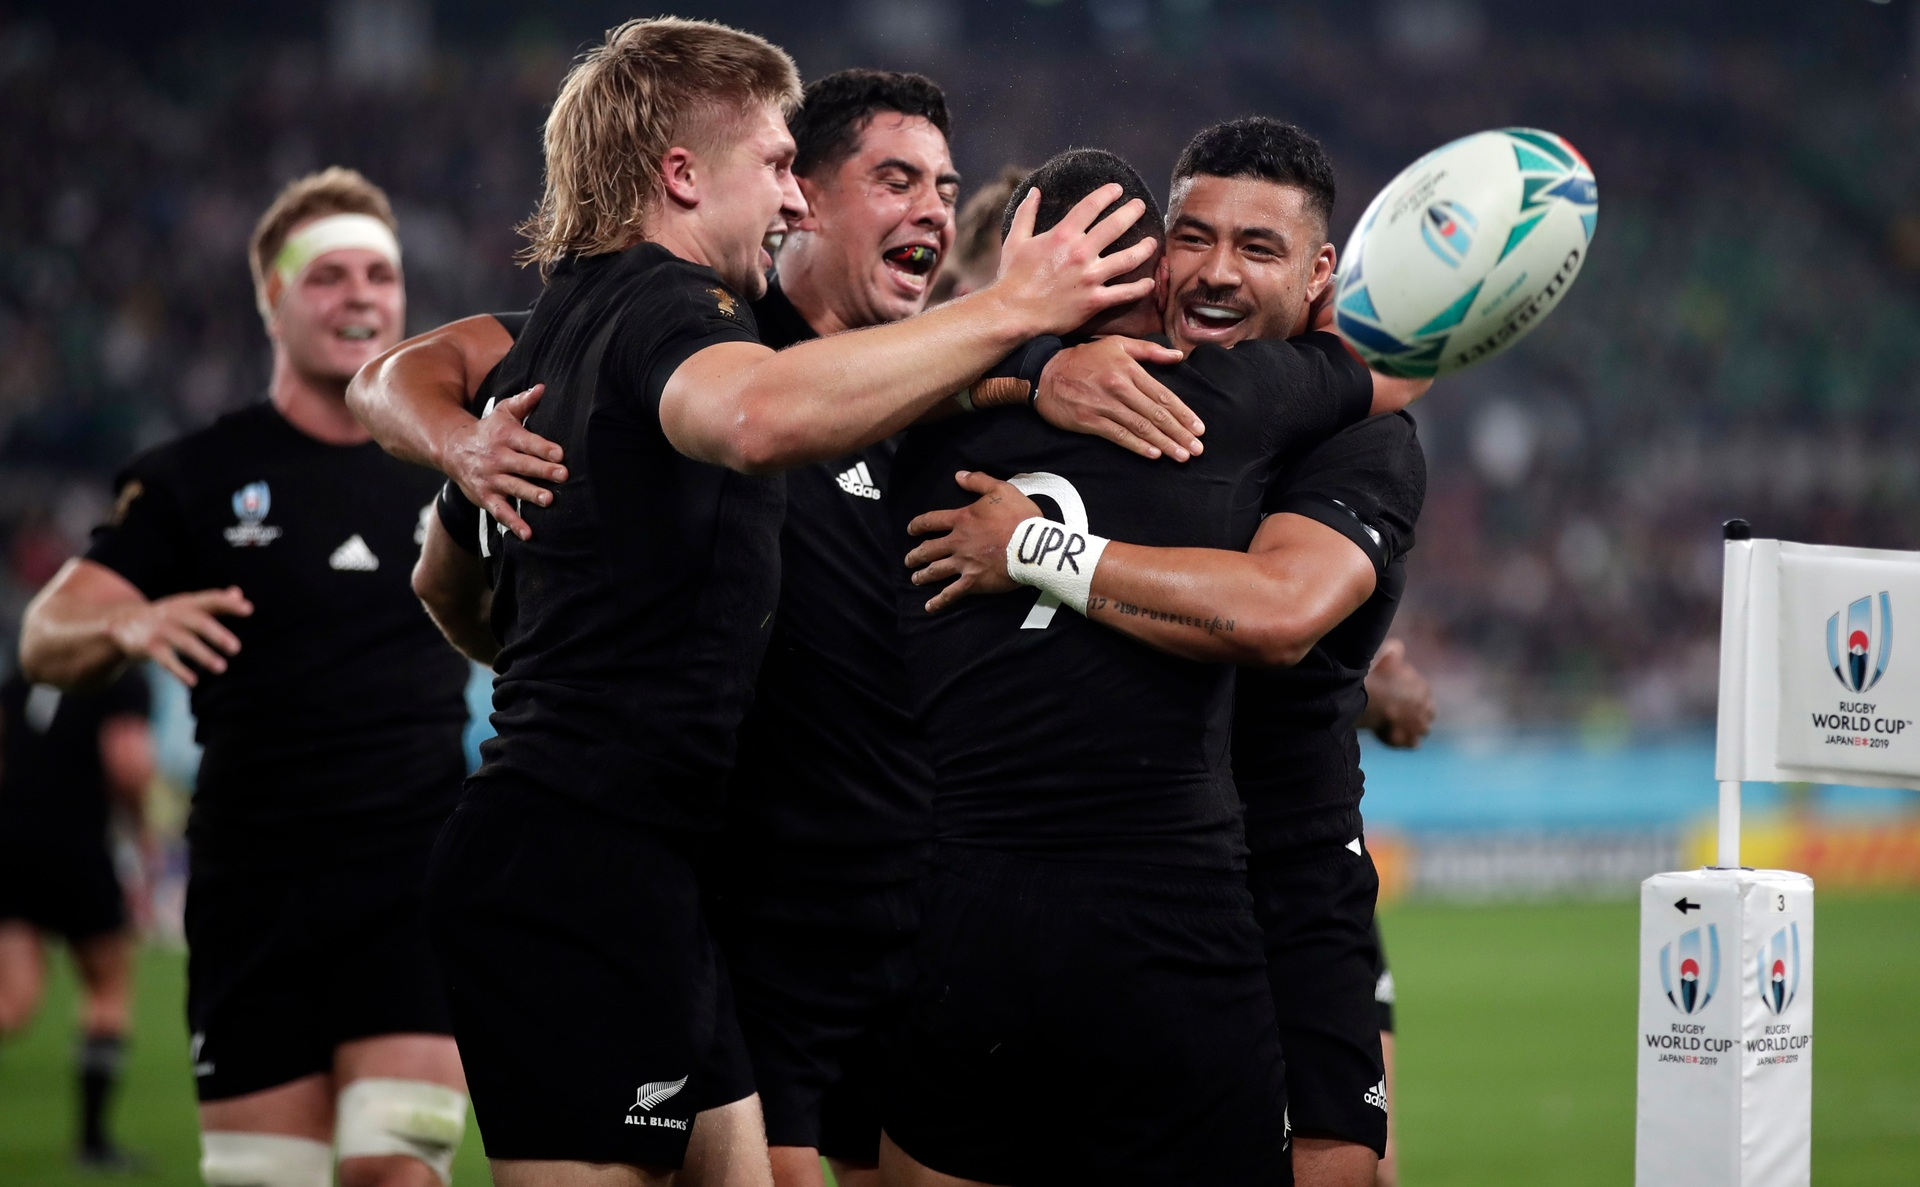 Highest score yet: The top rated All Black according to Herald readers